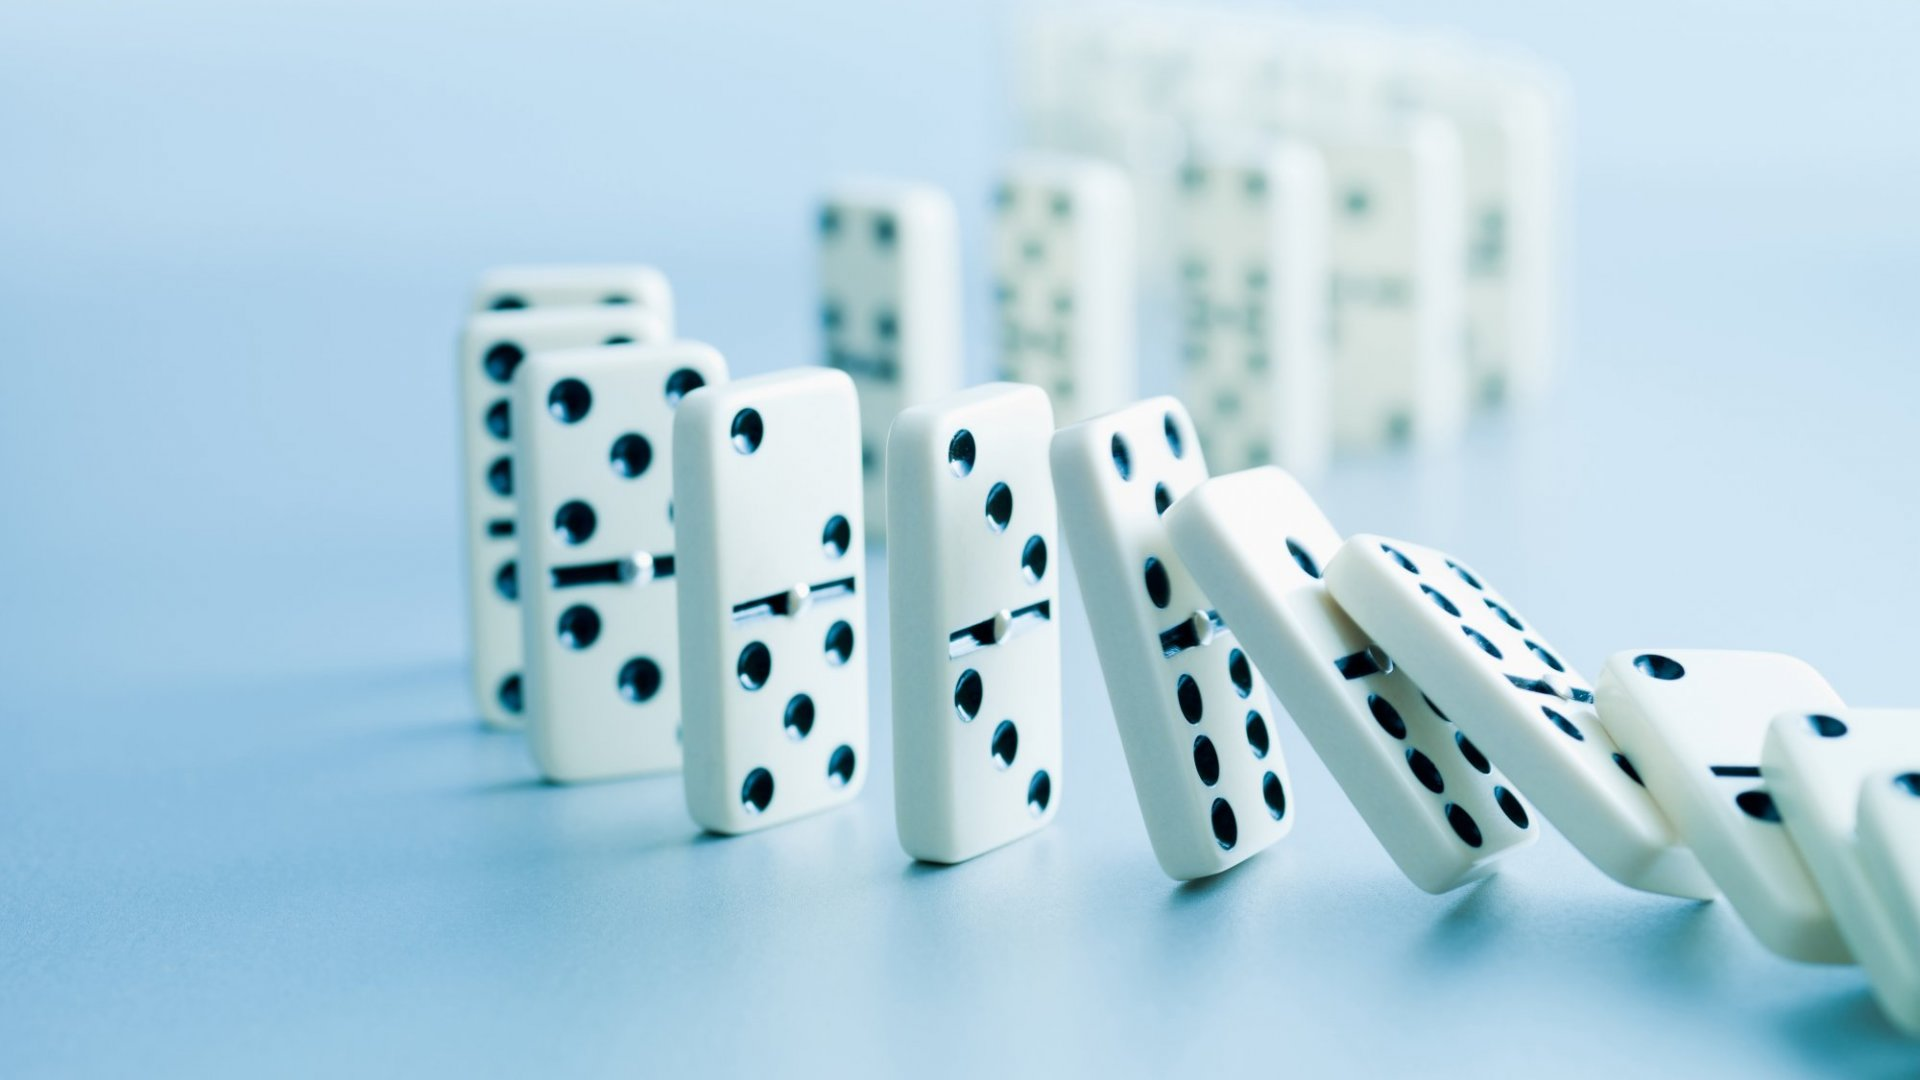 Want to achieve your ultimate goal but don't know how to get there? Here's how to line up the dominoes to success.